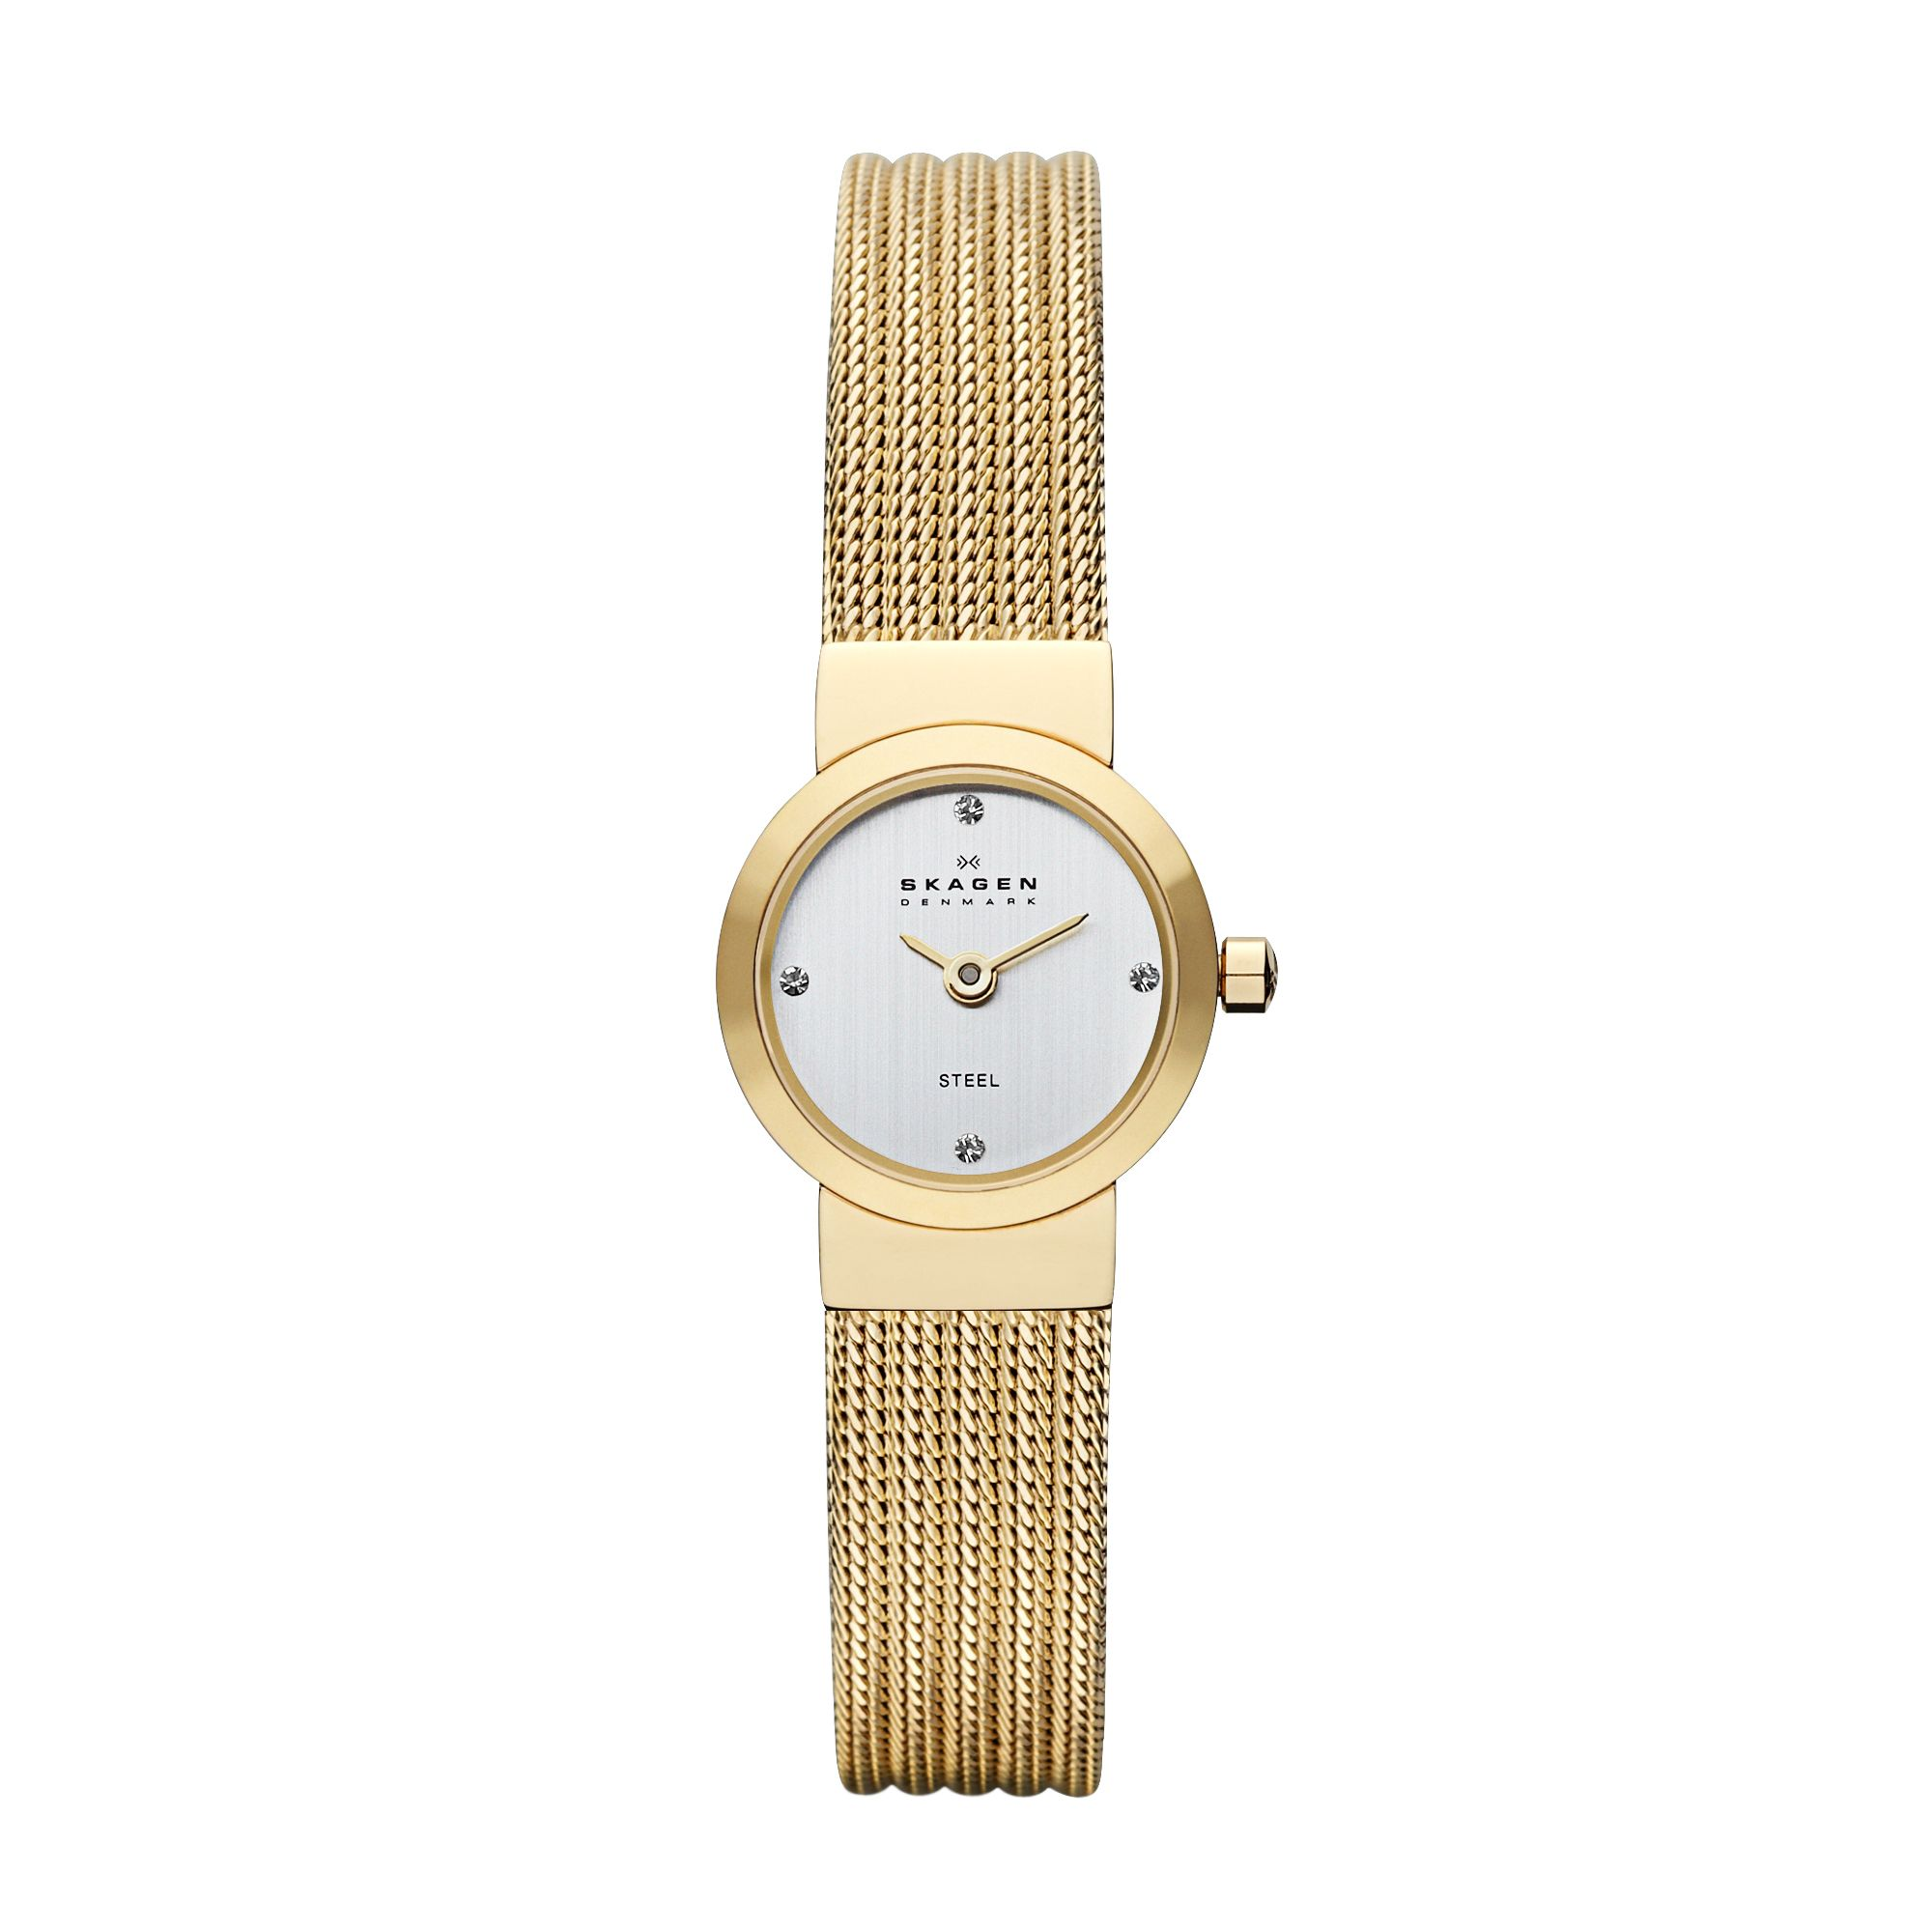 SKW2009 Classic stainless steel ladies watch